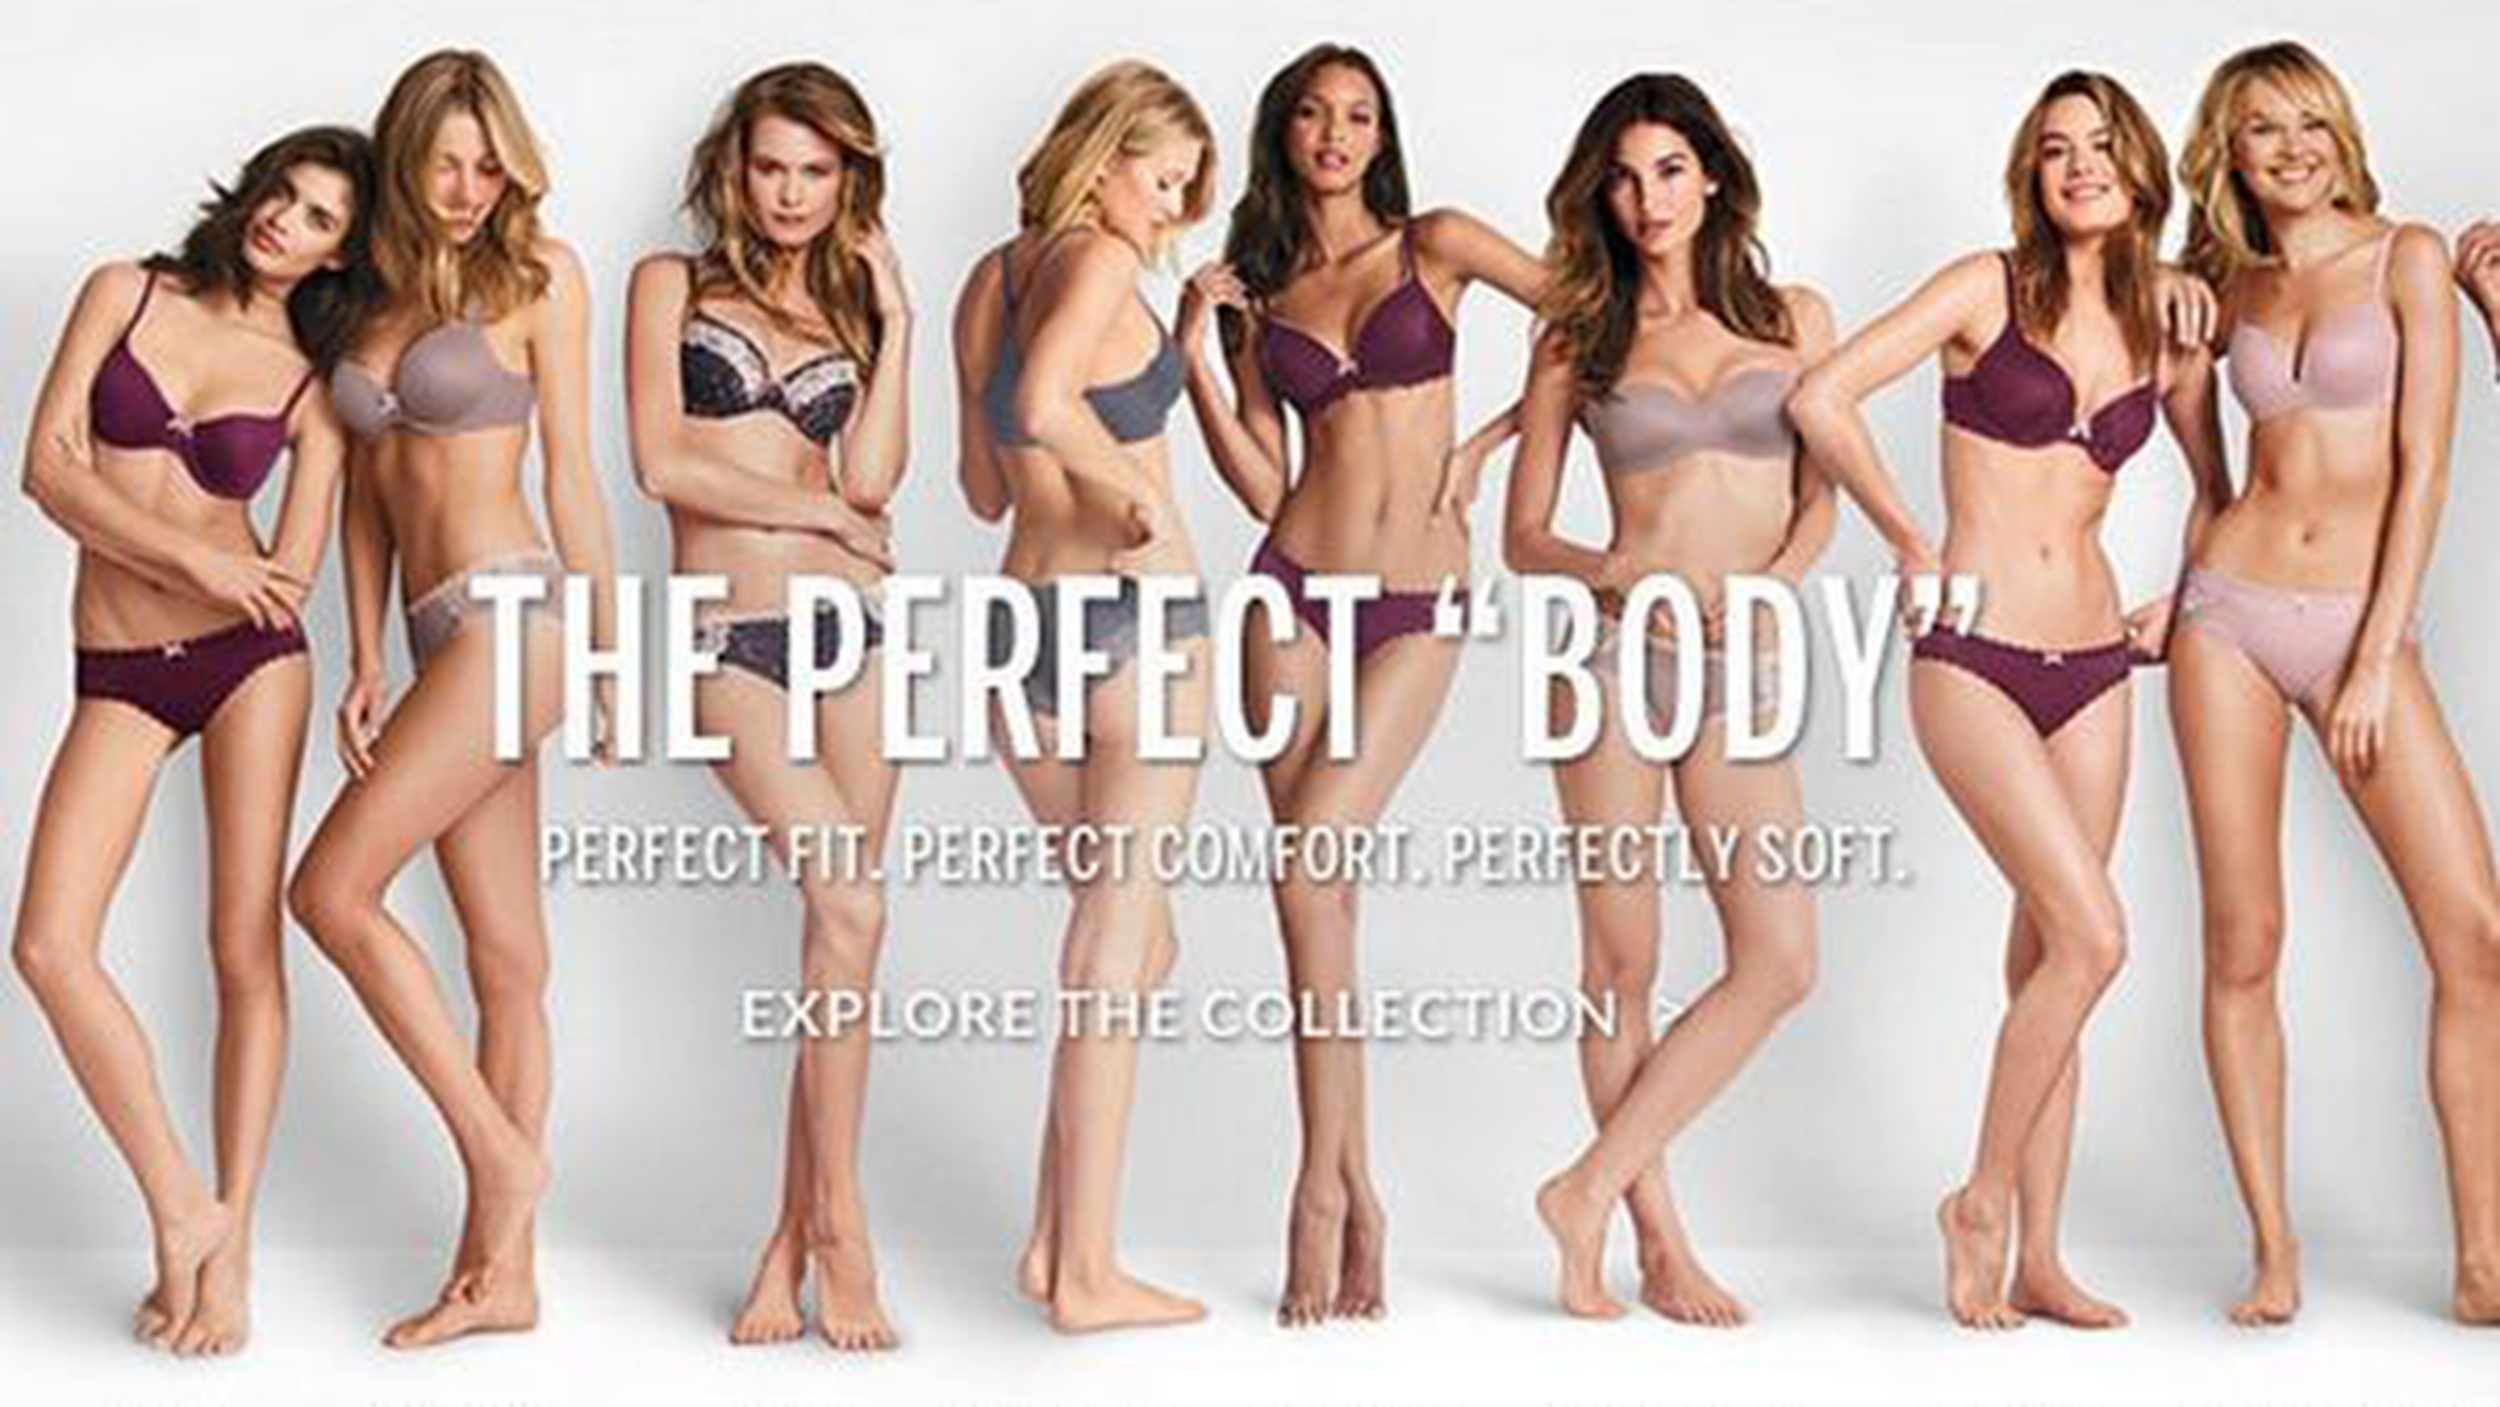 This controversial ad camapaign sparked backlash on social media.